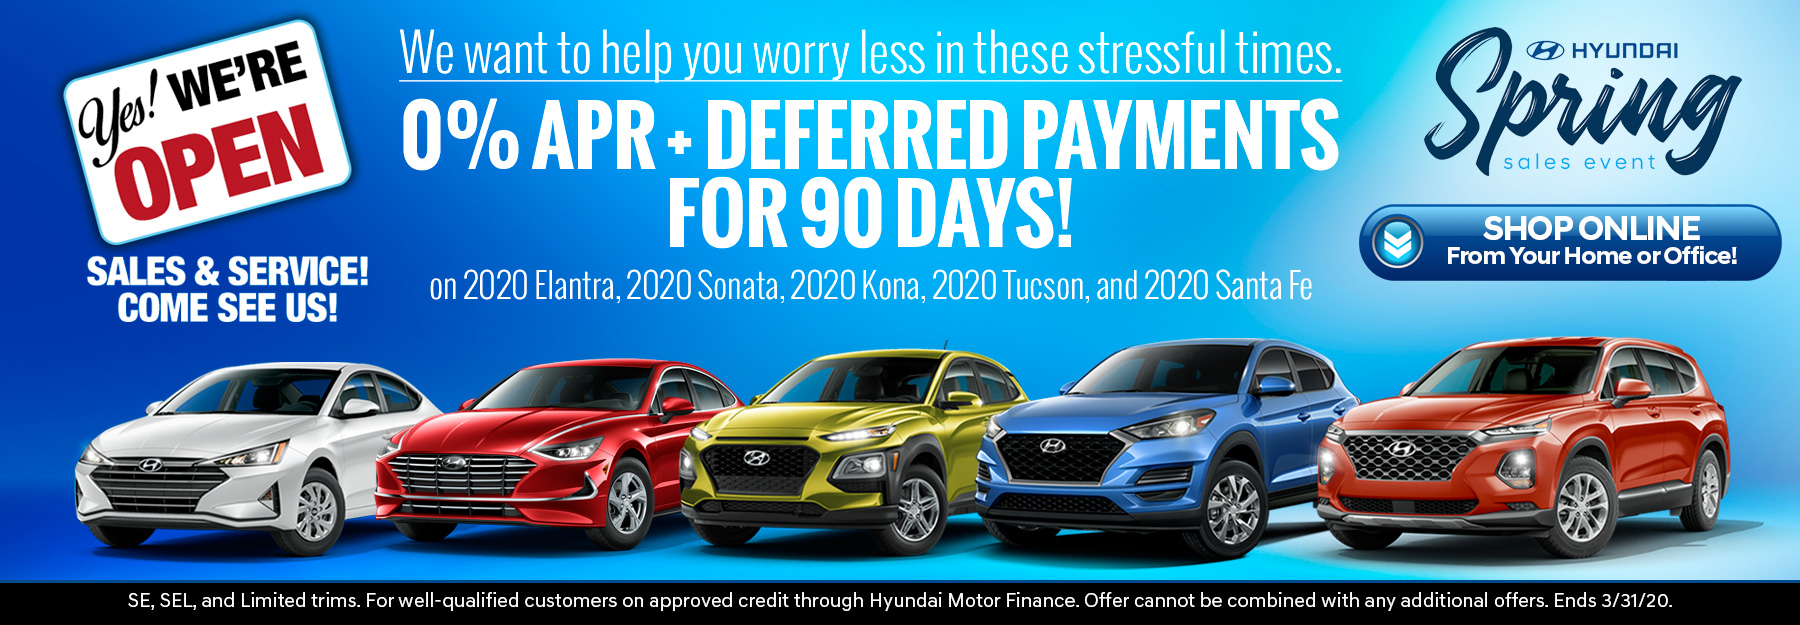 0% APR + Deferred Payments For 90 Days